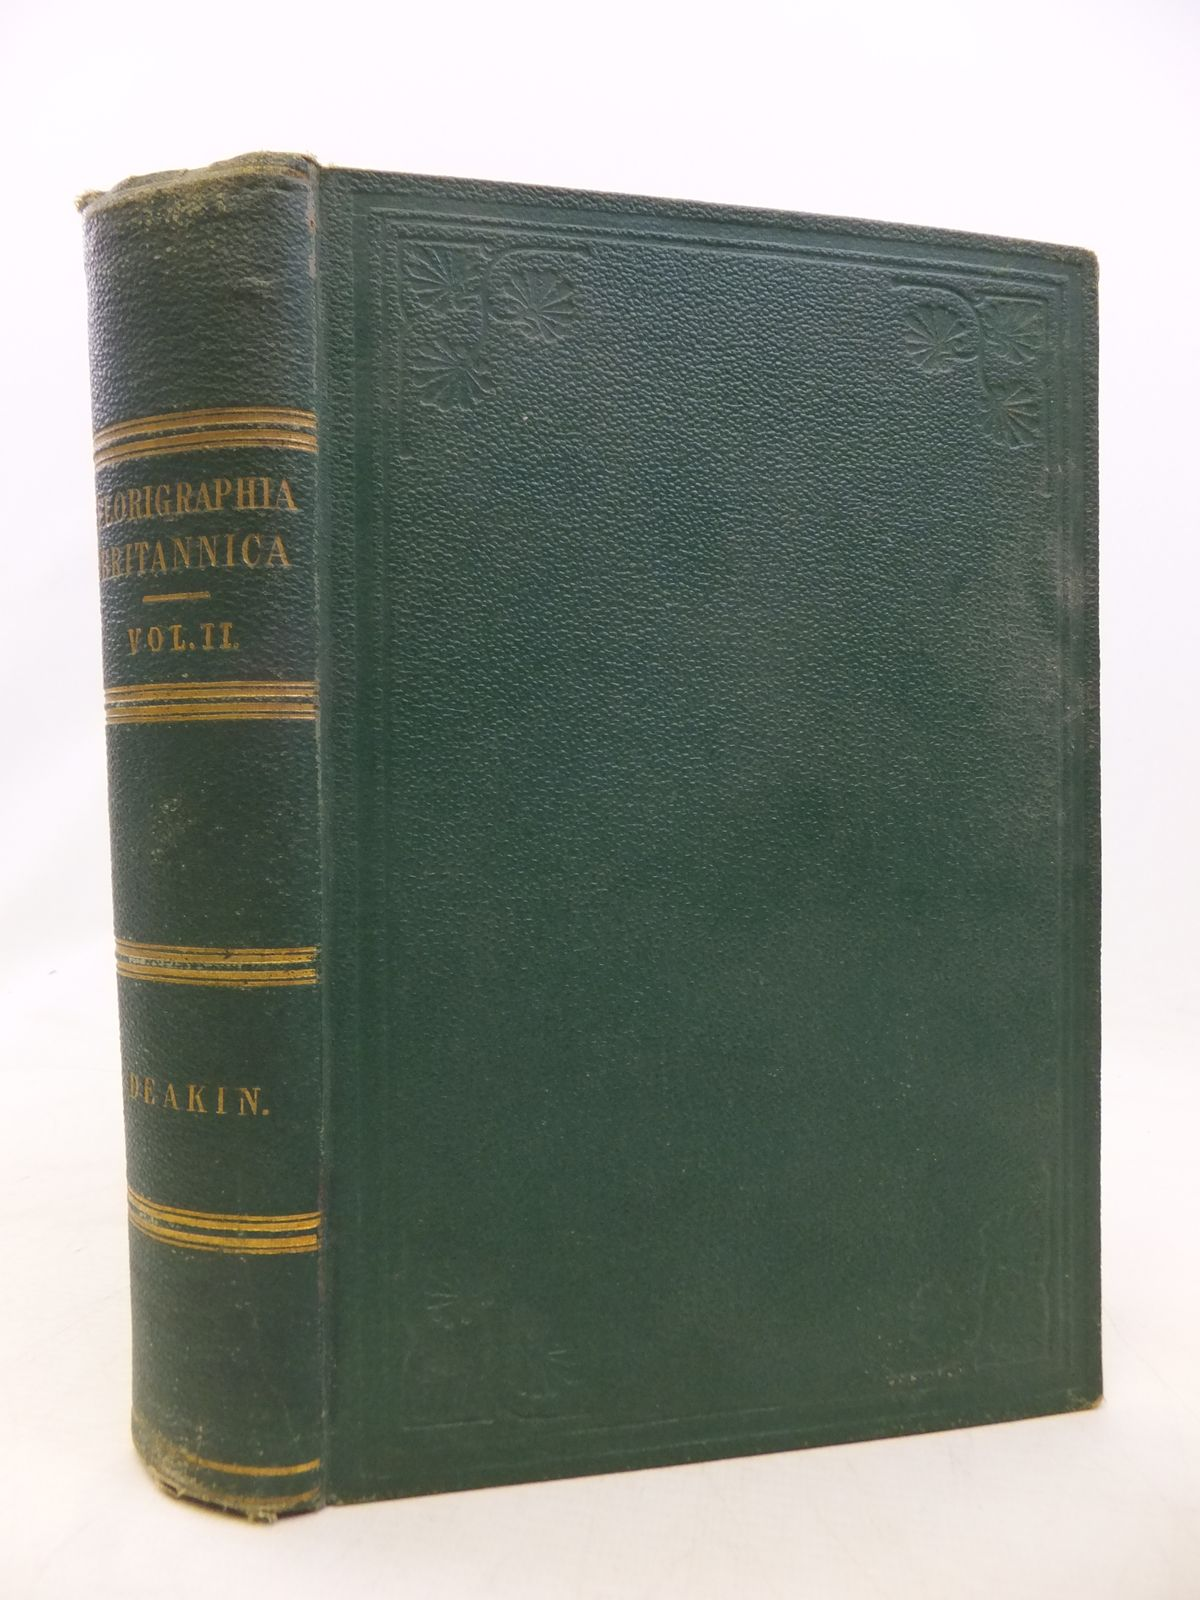 Photo of FLORIGRAPHIA BRITANNICA VOLUME II written by Deakin, Richard published by Groombridge & Sons (STOCK CODE: 1809153)  for sale by Stella & Rose's Books